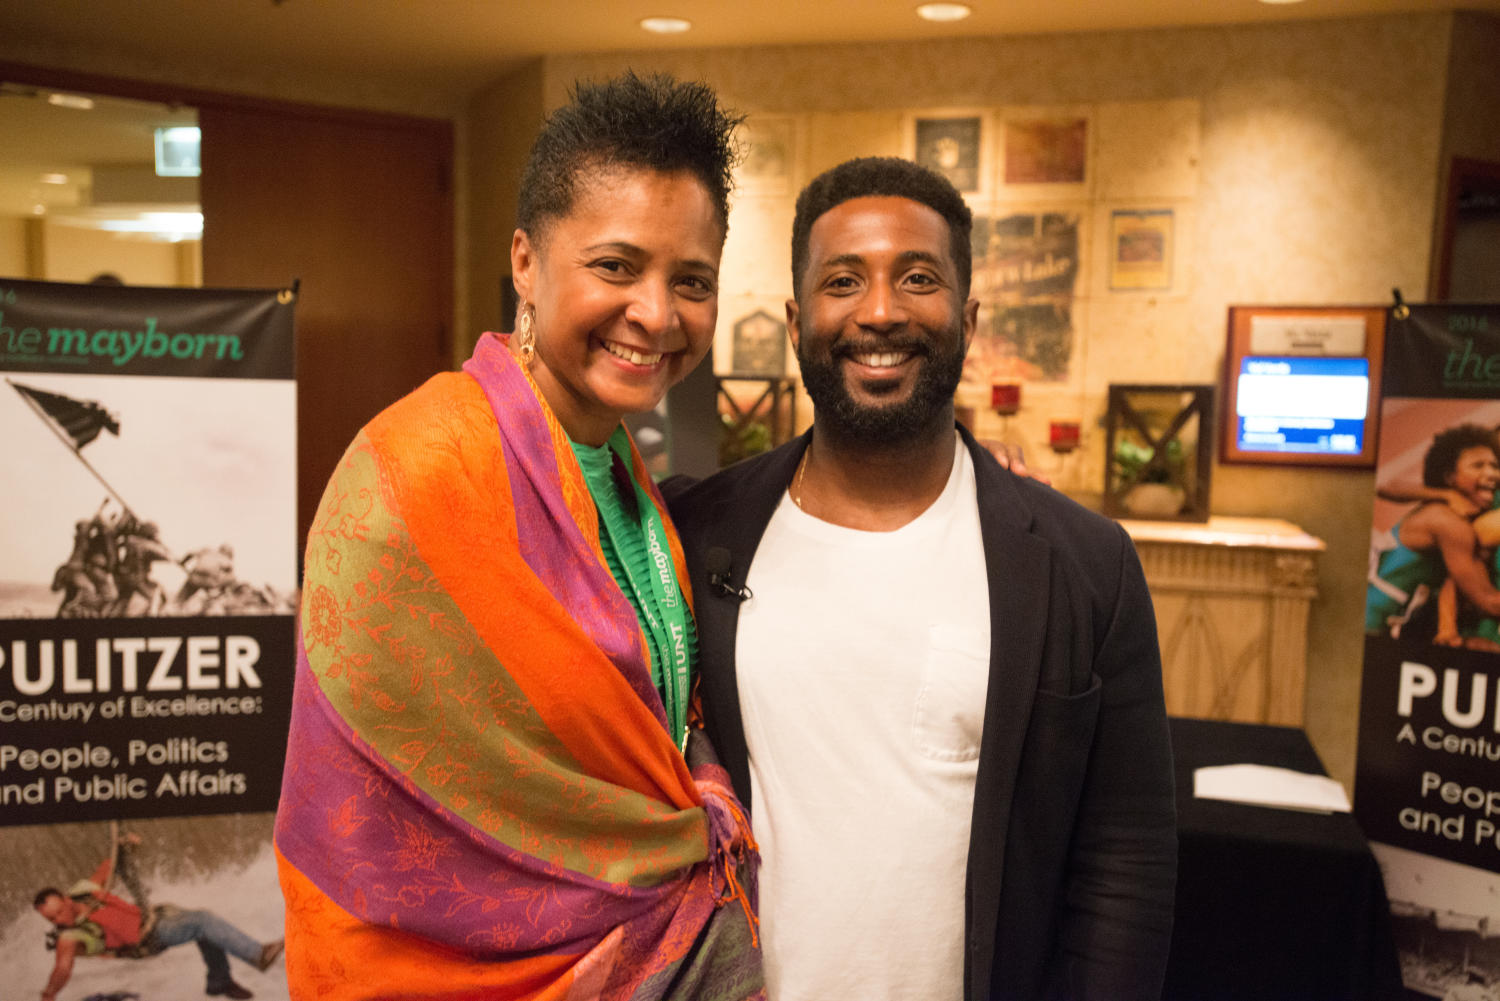 [Dorothy Bland and Wesley Morris standing together], Photograph of Dorothy Bland, the Dean of the Mayborn School of Journalism, and Wesley Morris, a critic-at-large with The New York Times, standing together after Margo Jeffersons keynote event. The keynote, which Morris acted as moderator for, took place during the Mayborn Literary Nonfiction Conference. They are standing in the hallways of the Hilton DFW Lakes Executive Conference Center, Grapevine, TX where the conference was held.,